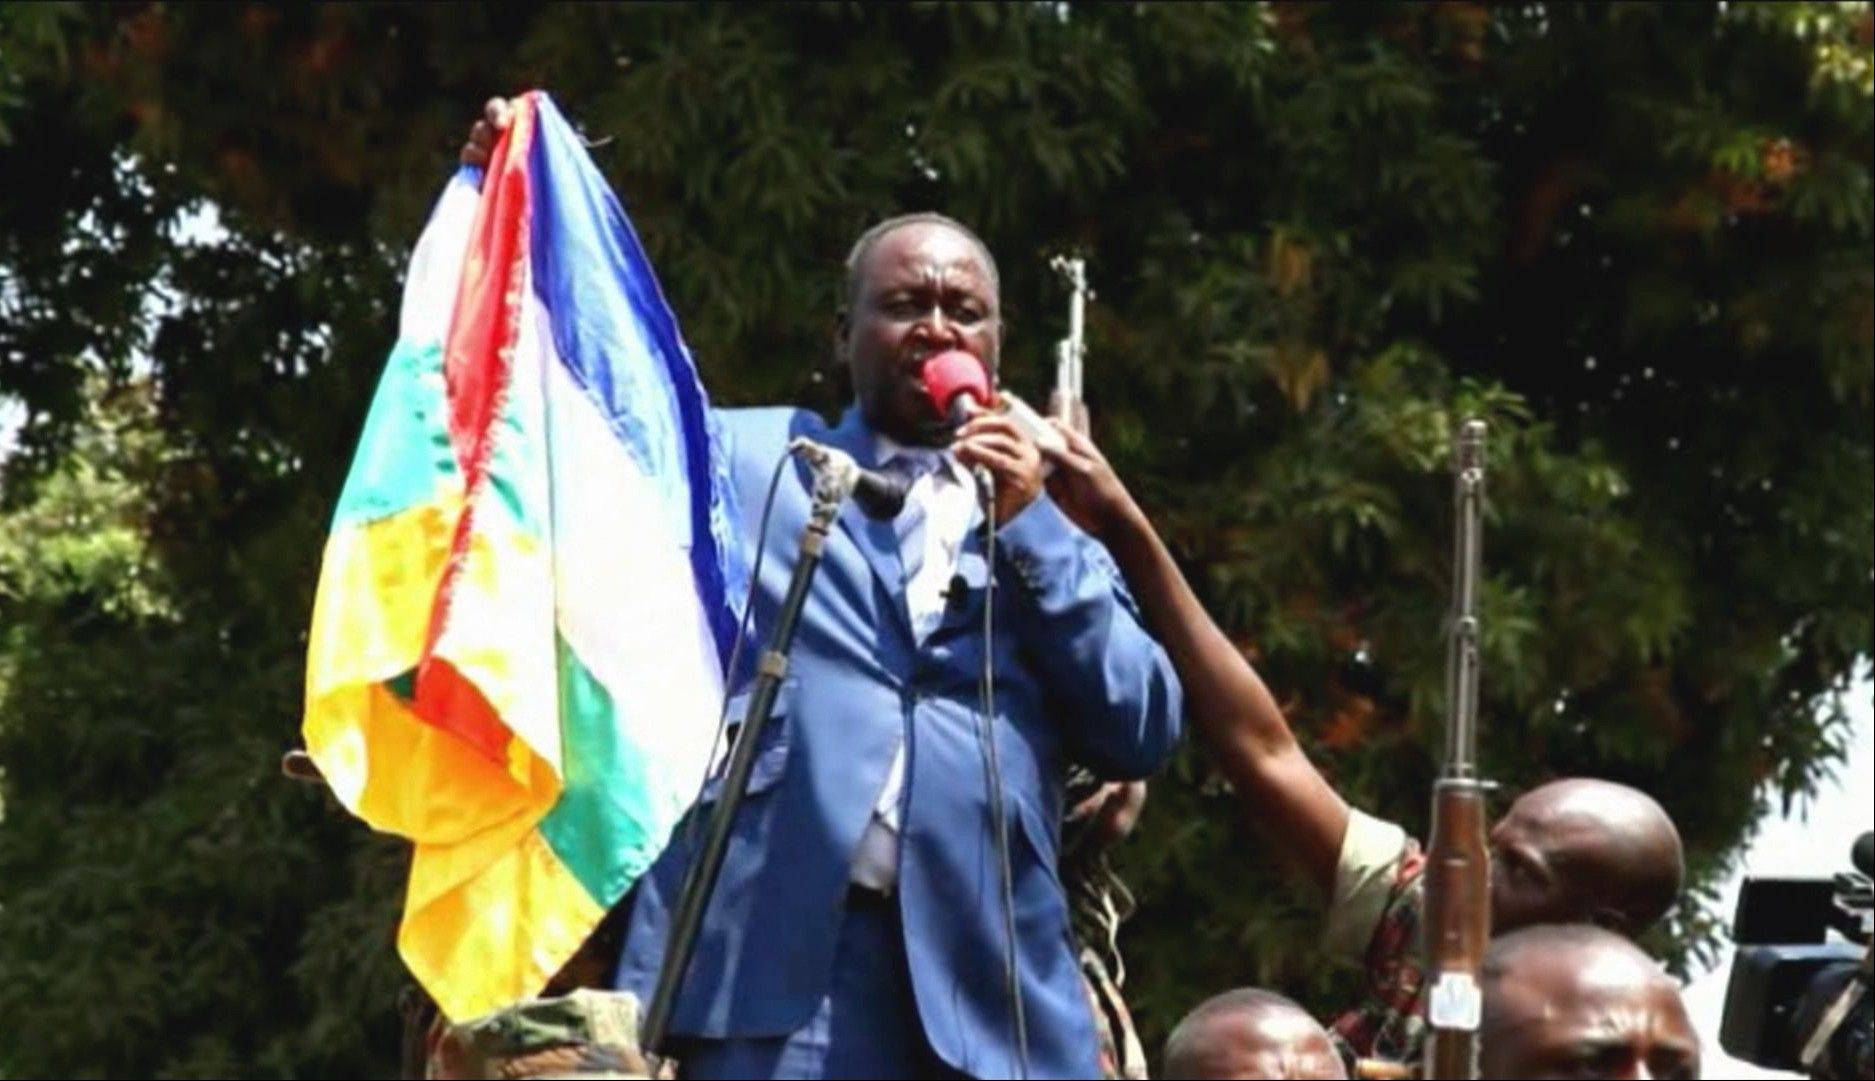 President Francois Bozize addresses crowds in Bangui, Central African Republic. The president of Central African Republic on Thursday urgently called on France and other foreign powers to help his government fend off rebels who are quickly seizing territory and approaching the capital Bangui. French officials, however, declined to offer any military assistance in response to the plea from Francois Bozize.